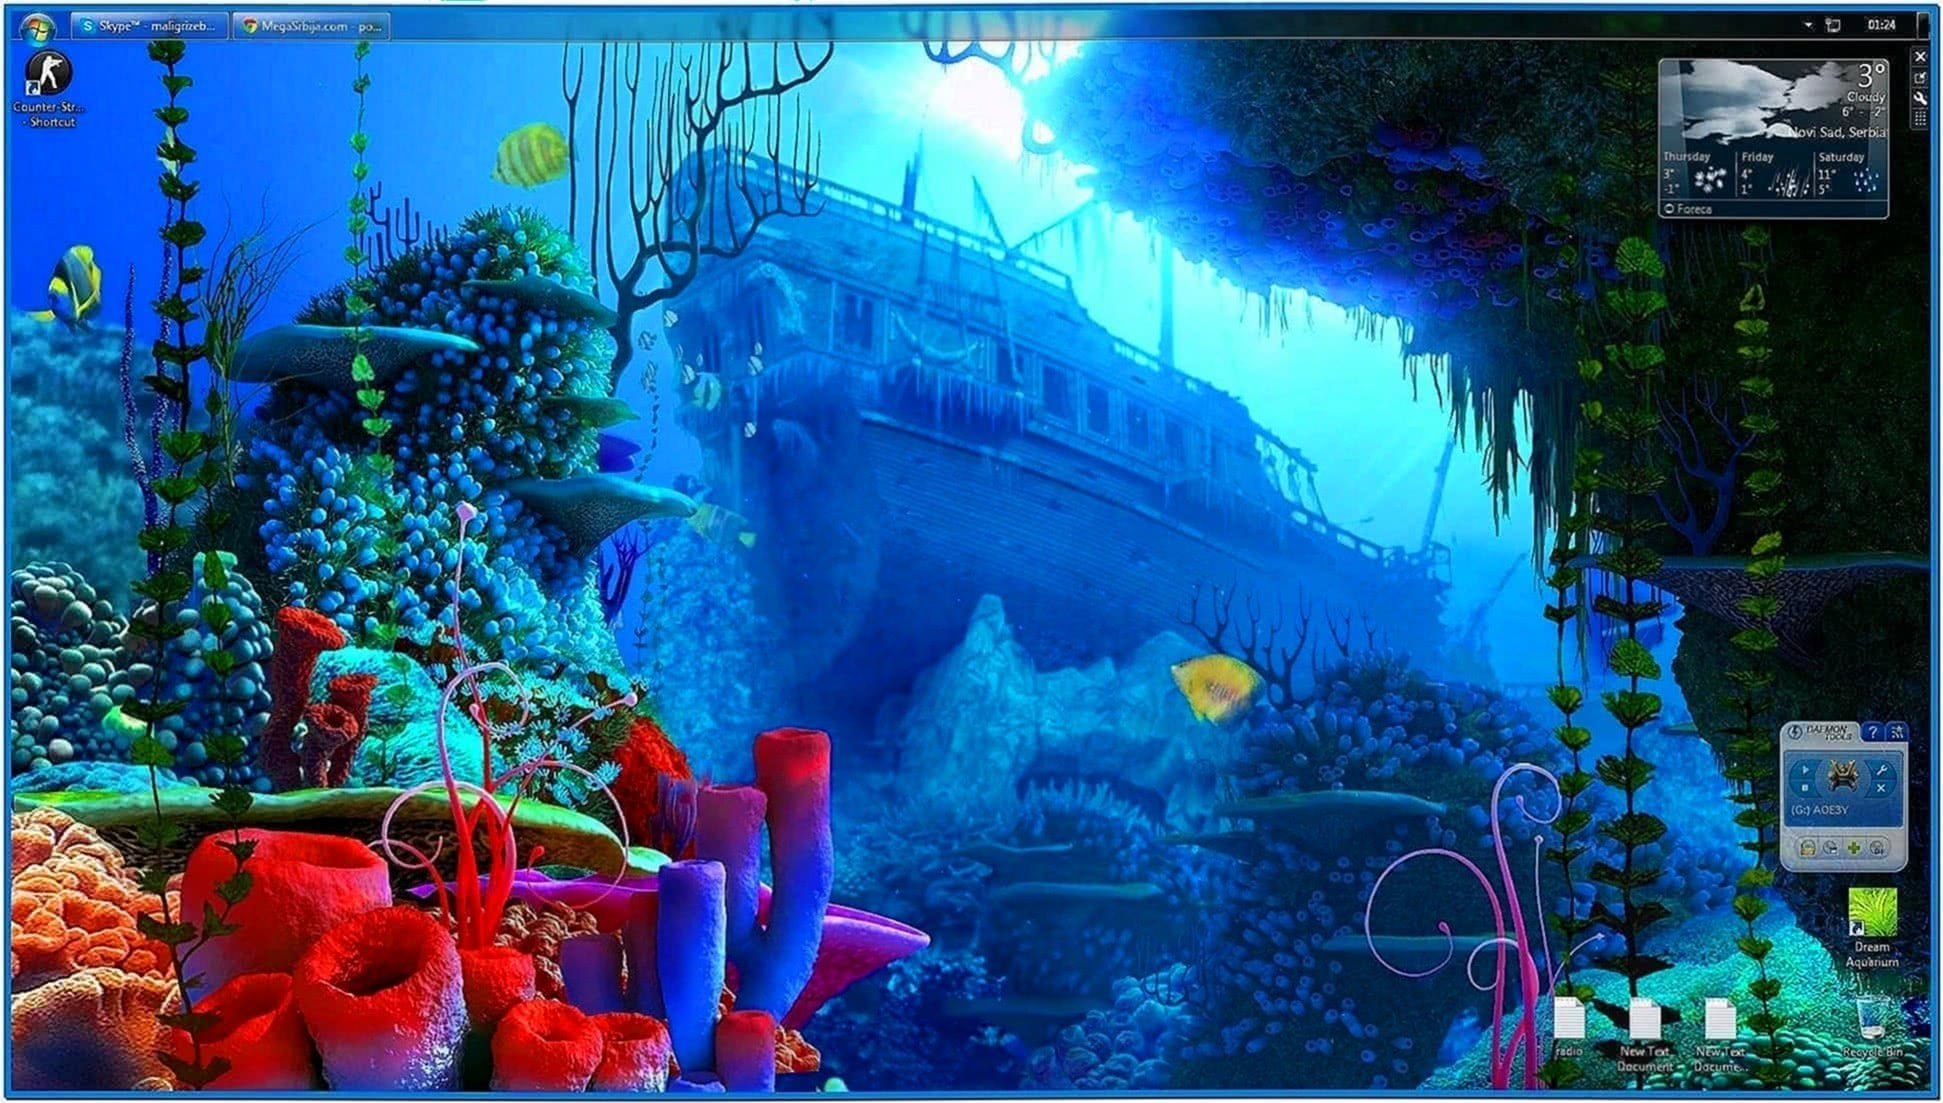 Coral Reef 3D Screensaver and Animated Wallpaper 1.1.4